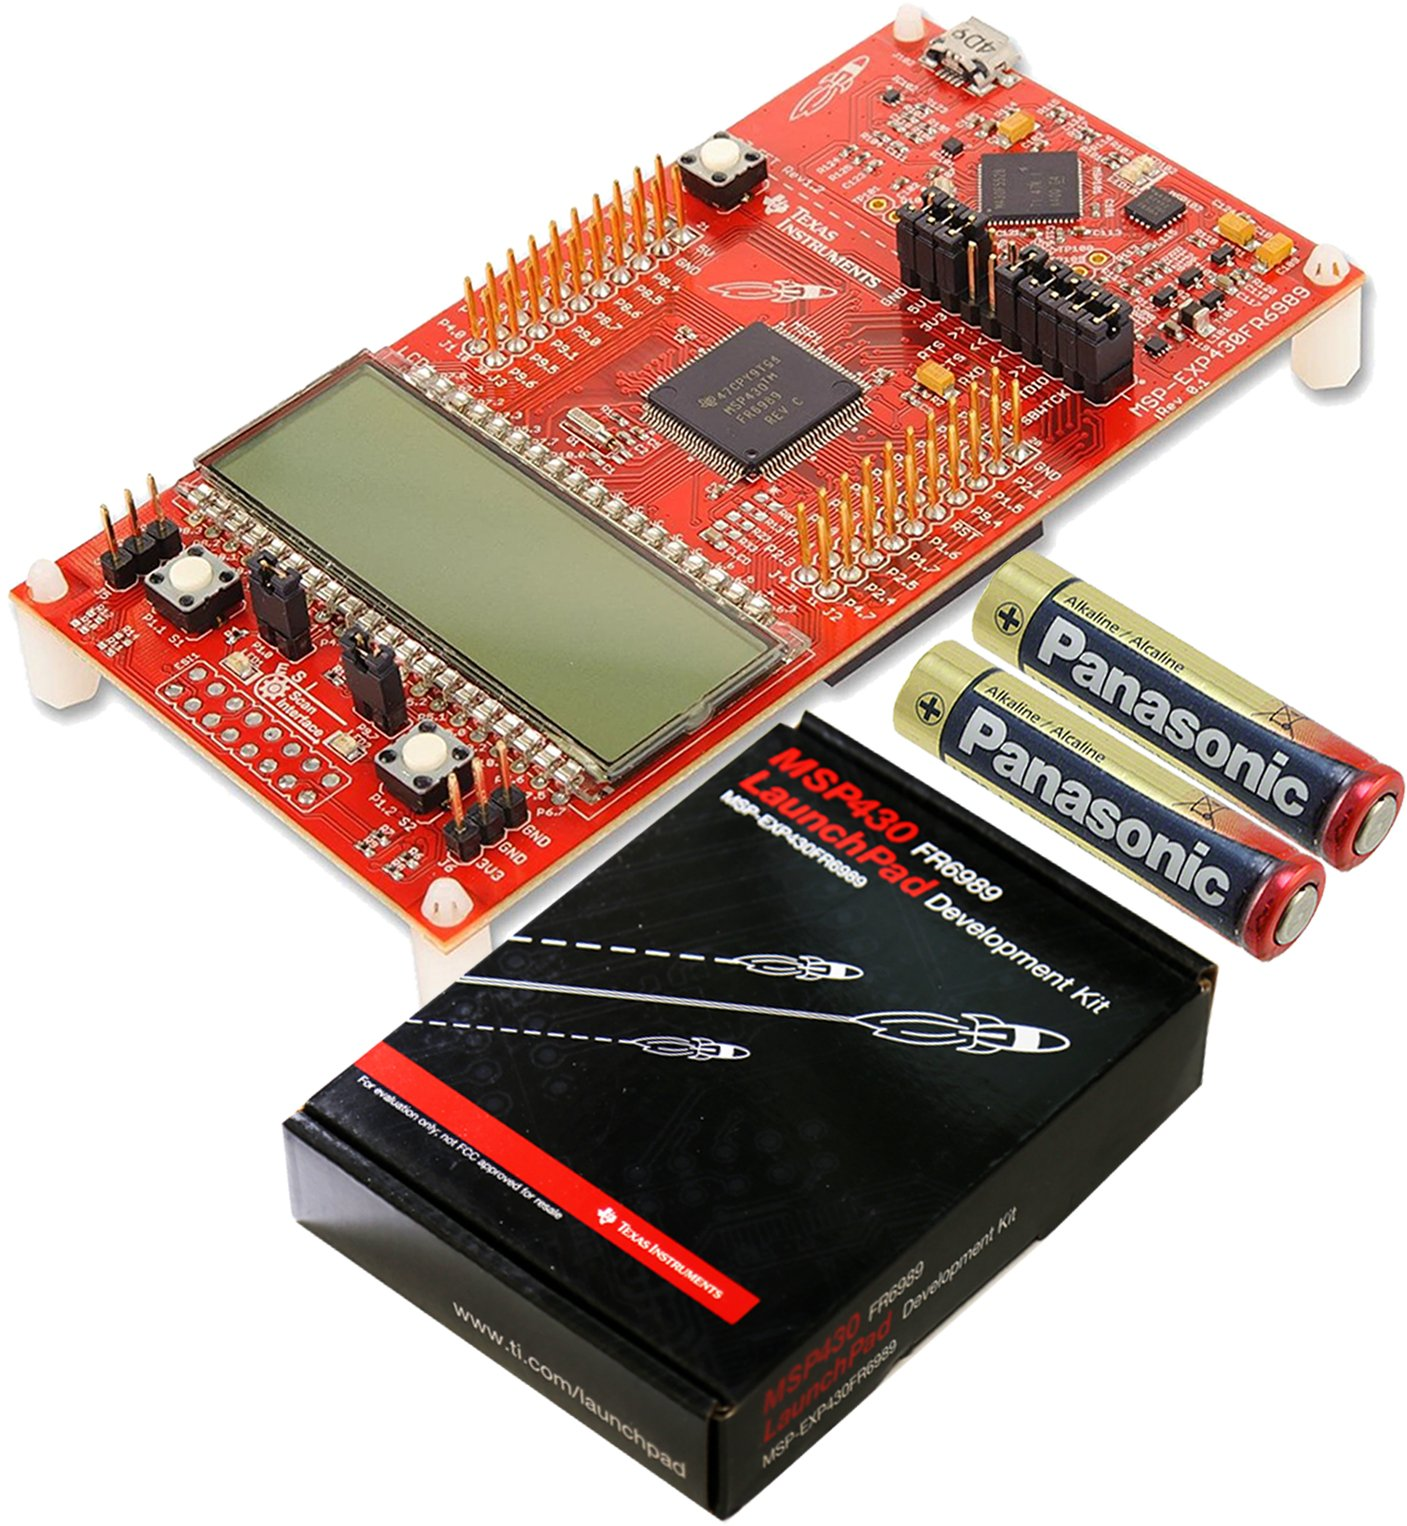 MSP-EXP430 FR6989 Texas Instruments Embedded Evaluation Board (BONUS 2- AAA BATTERY)- LaunchPad - MSP-EXP430FR6989